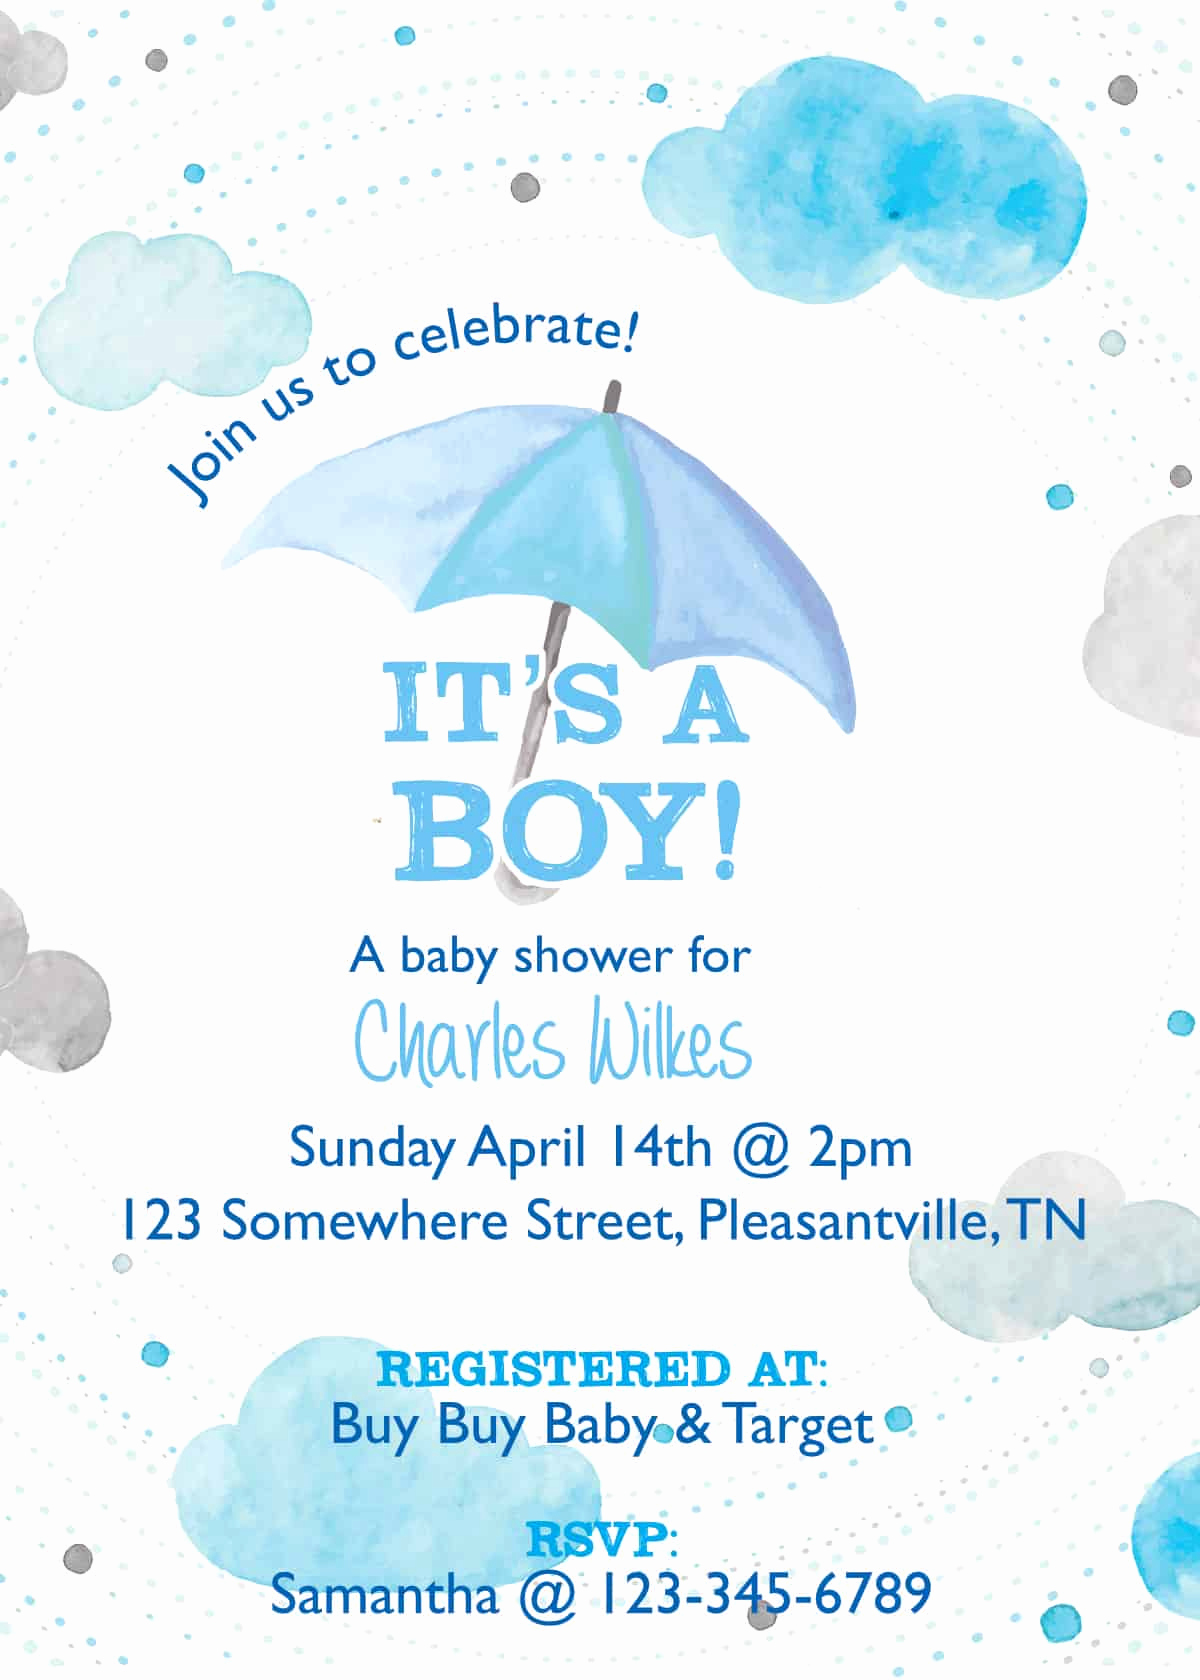 Preemie Baby Shower Invitation Wording Fresh Baby Shower Invitation Springtime Showers Happy Little